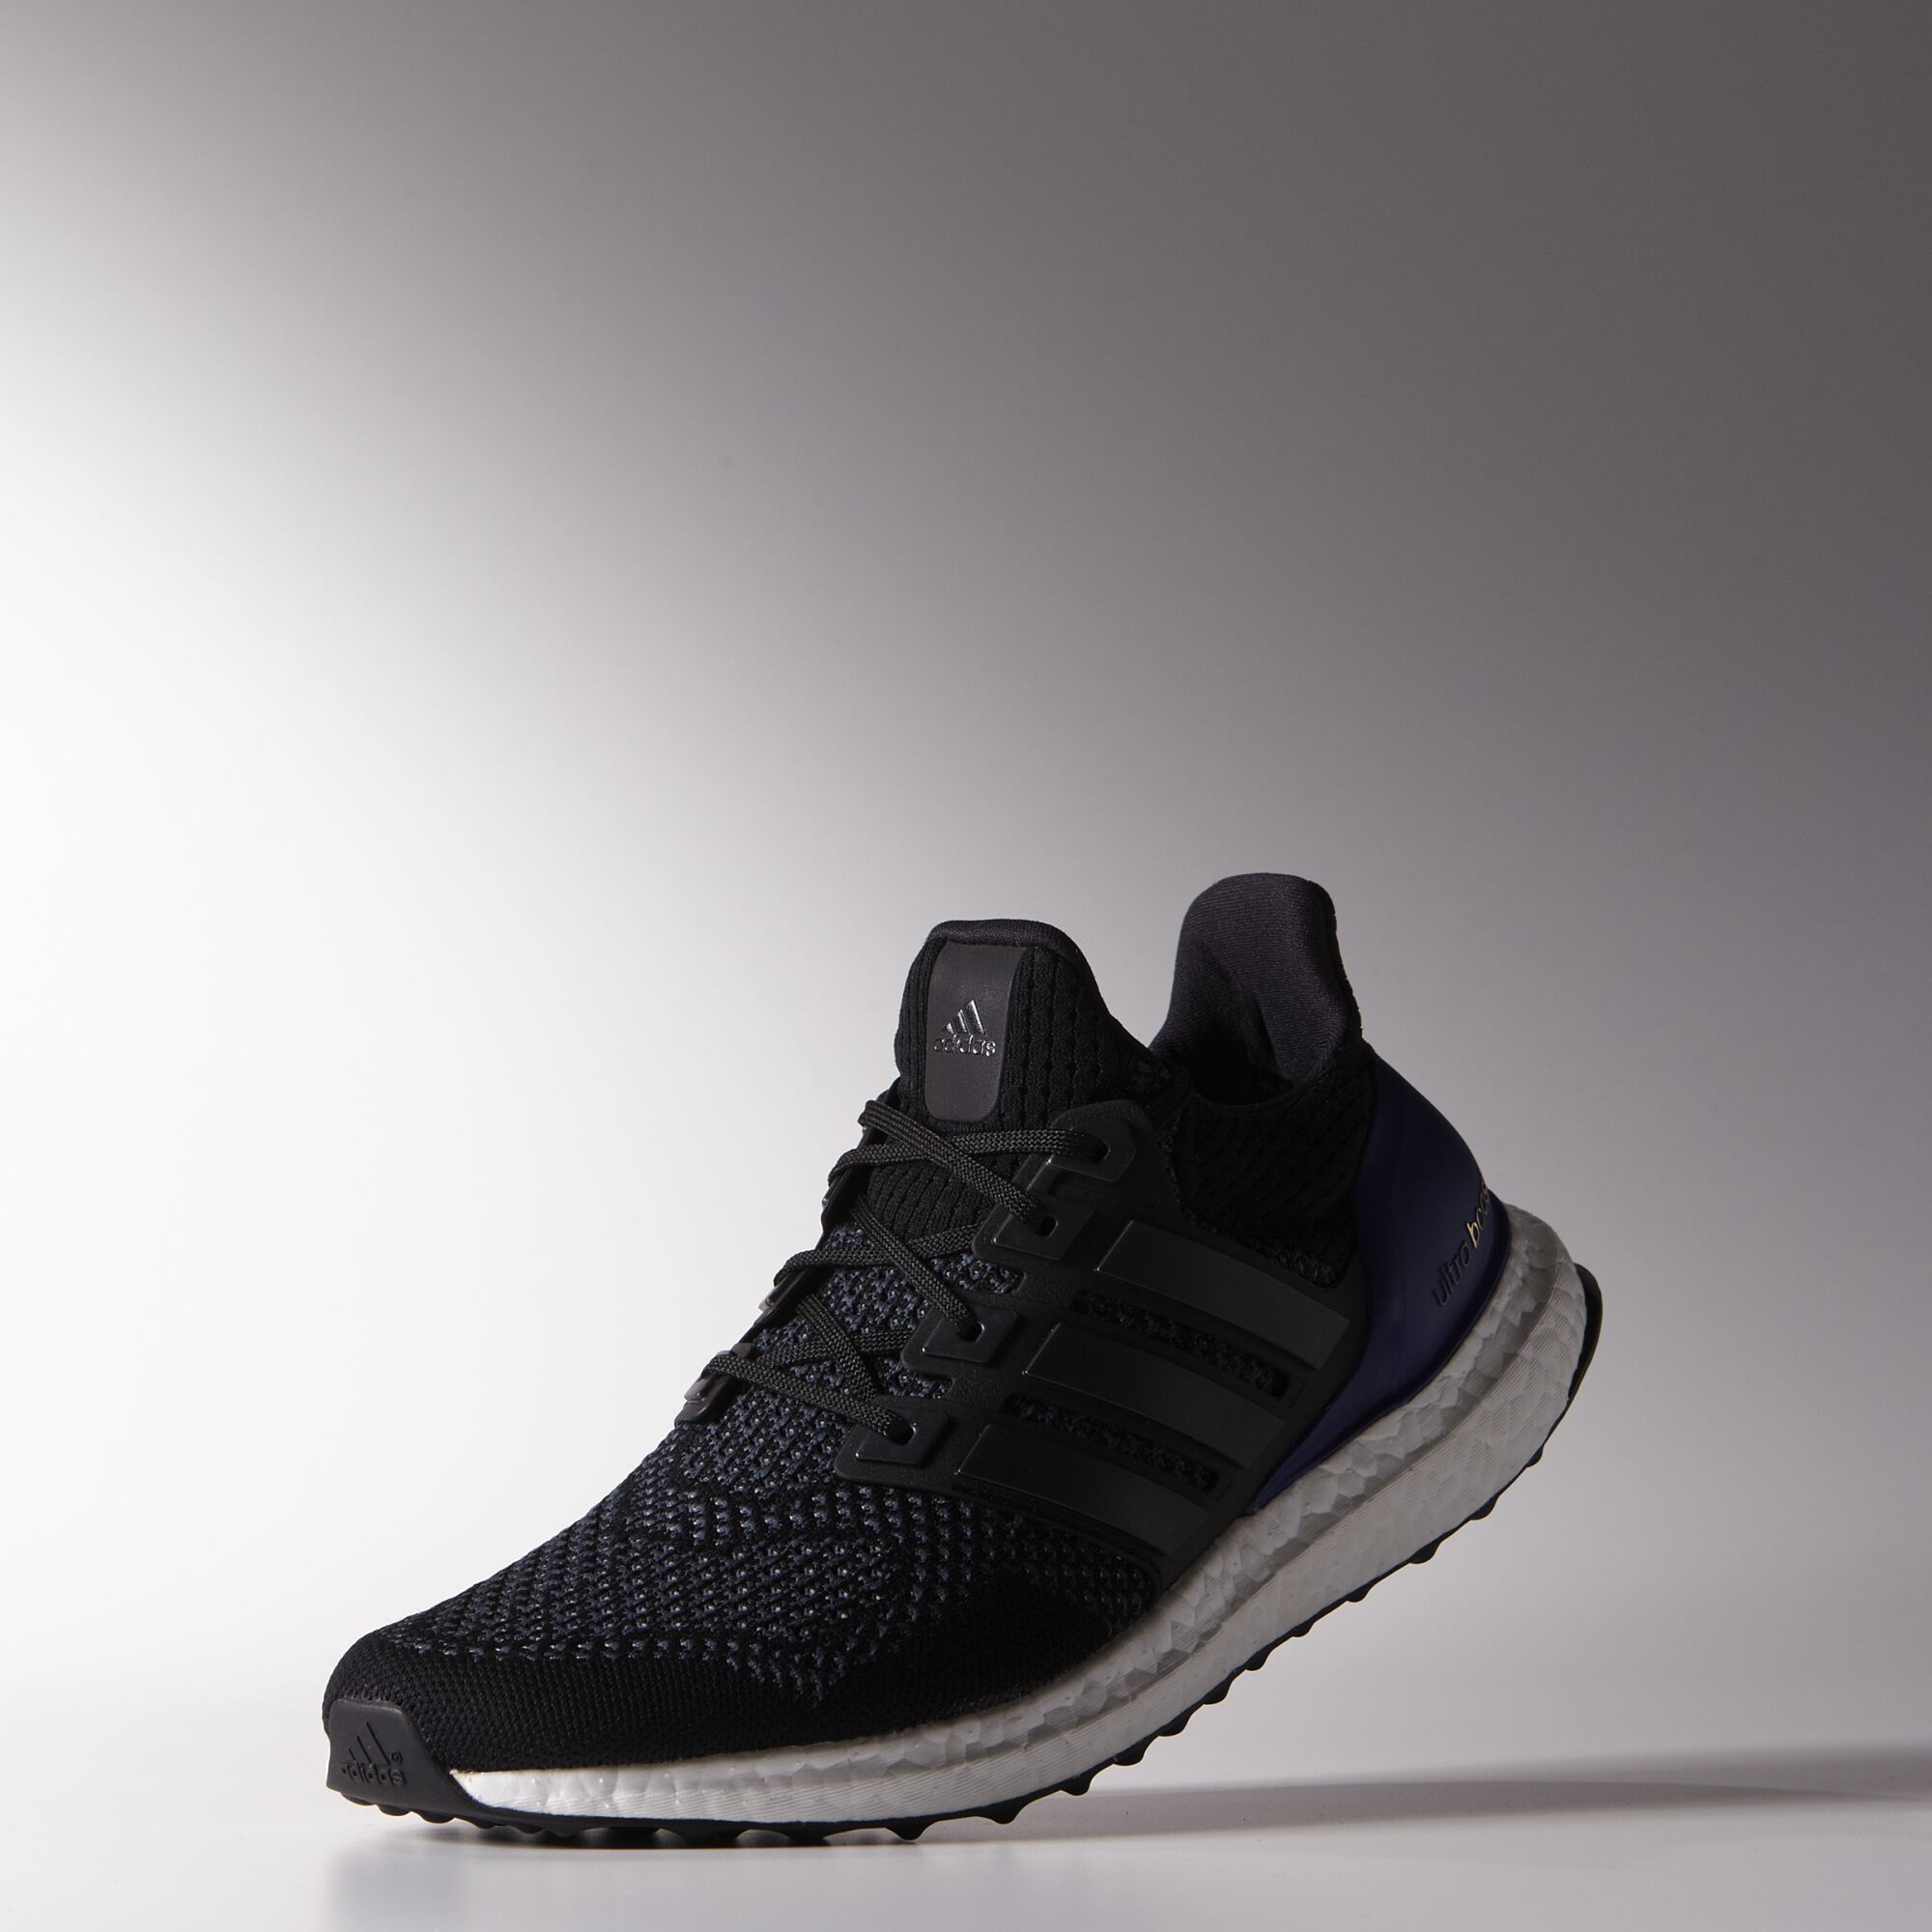 96d9dc84 adidas: Ultra Boost Core Black CW: Core Black/Gold Metal/Purple SKU: B27171  Release: 03.18.15. Retail: $180